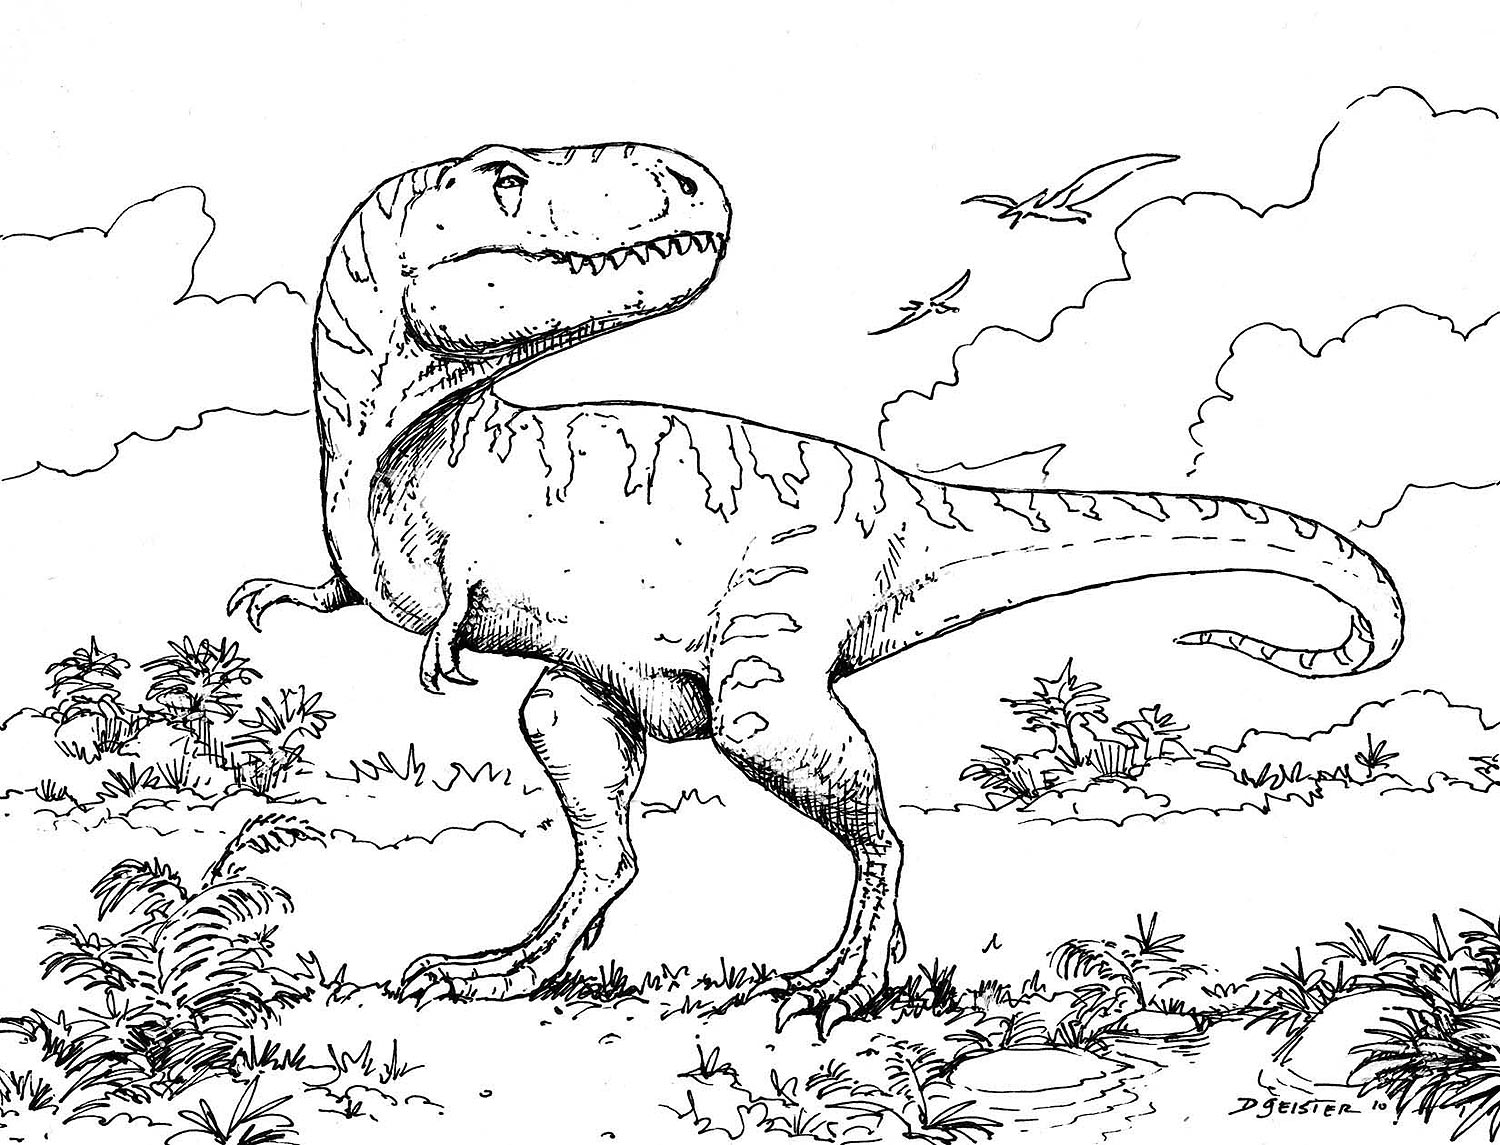 Real looking dinosaur coloring pages - Dinosaur Printable Coloring Pages Download